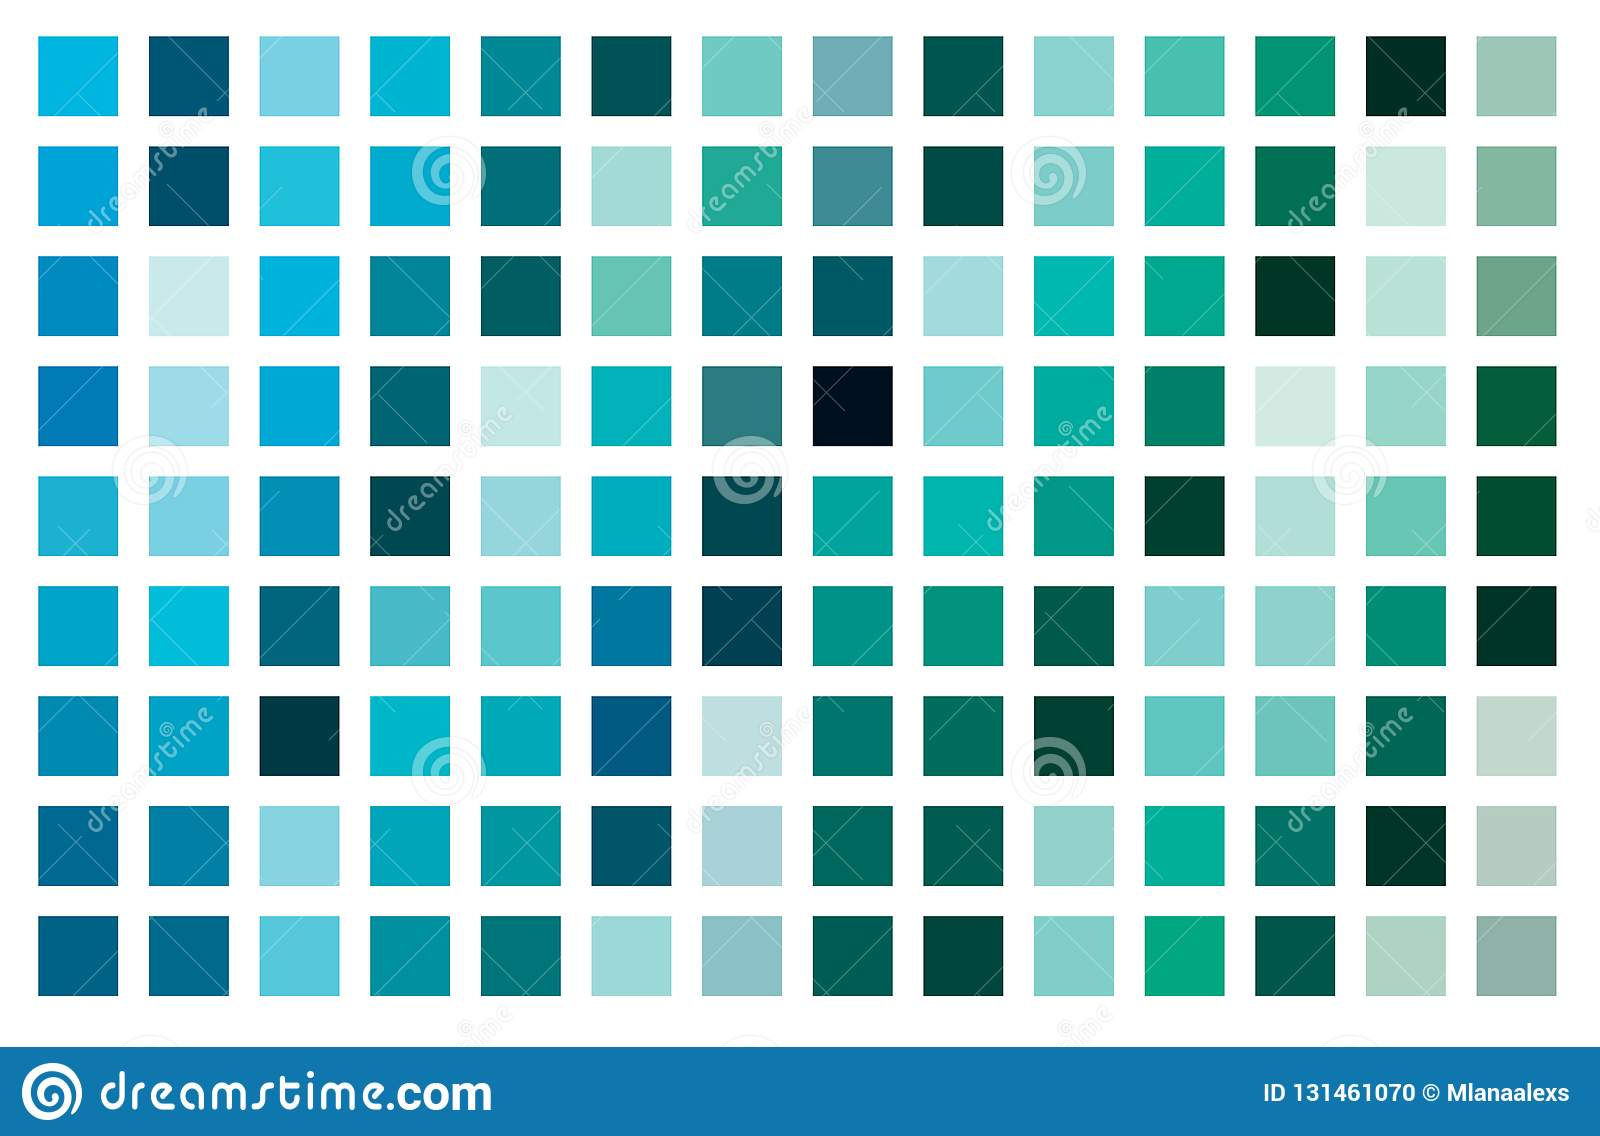 Aquamarine Color Palette Vector Stock Vector Illustration Of Palette Surface 131461070